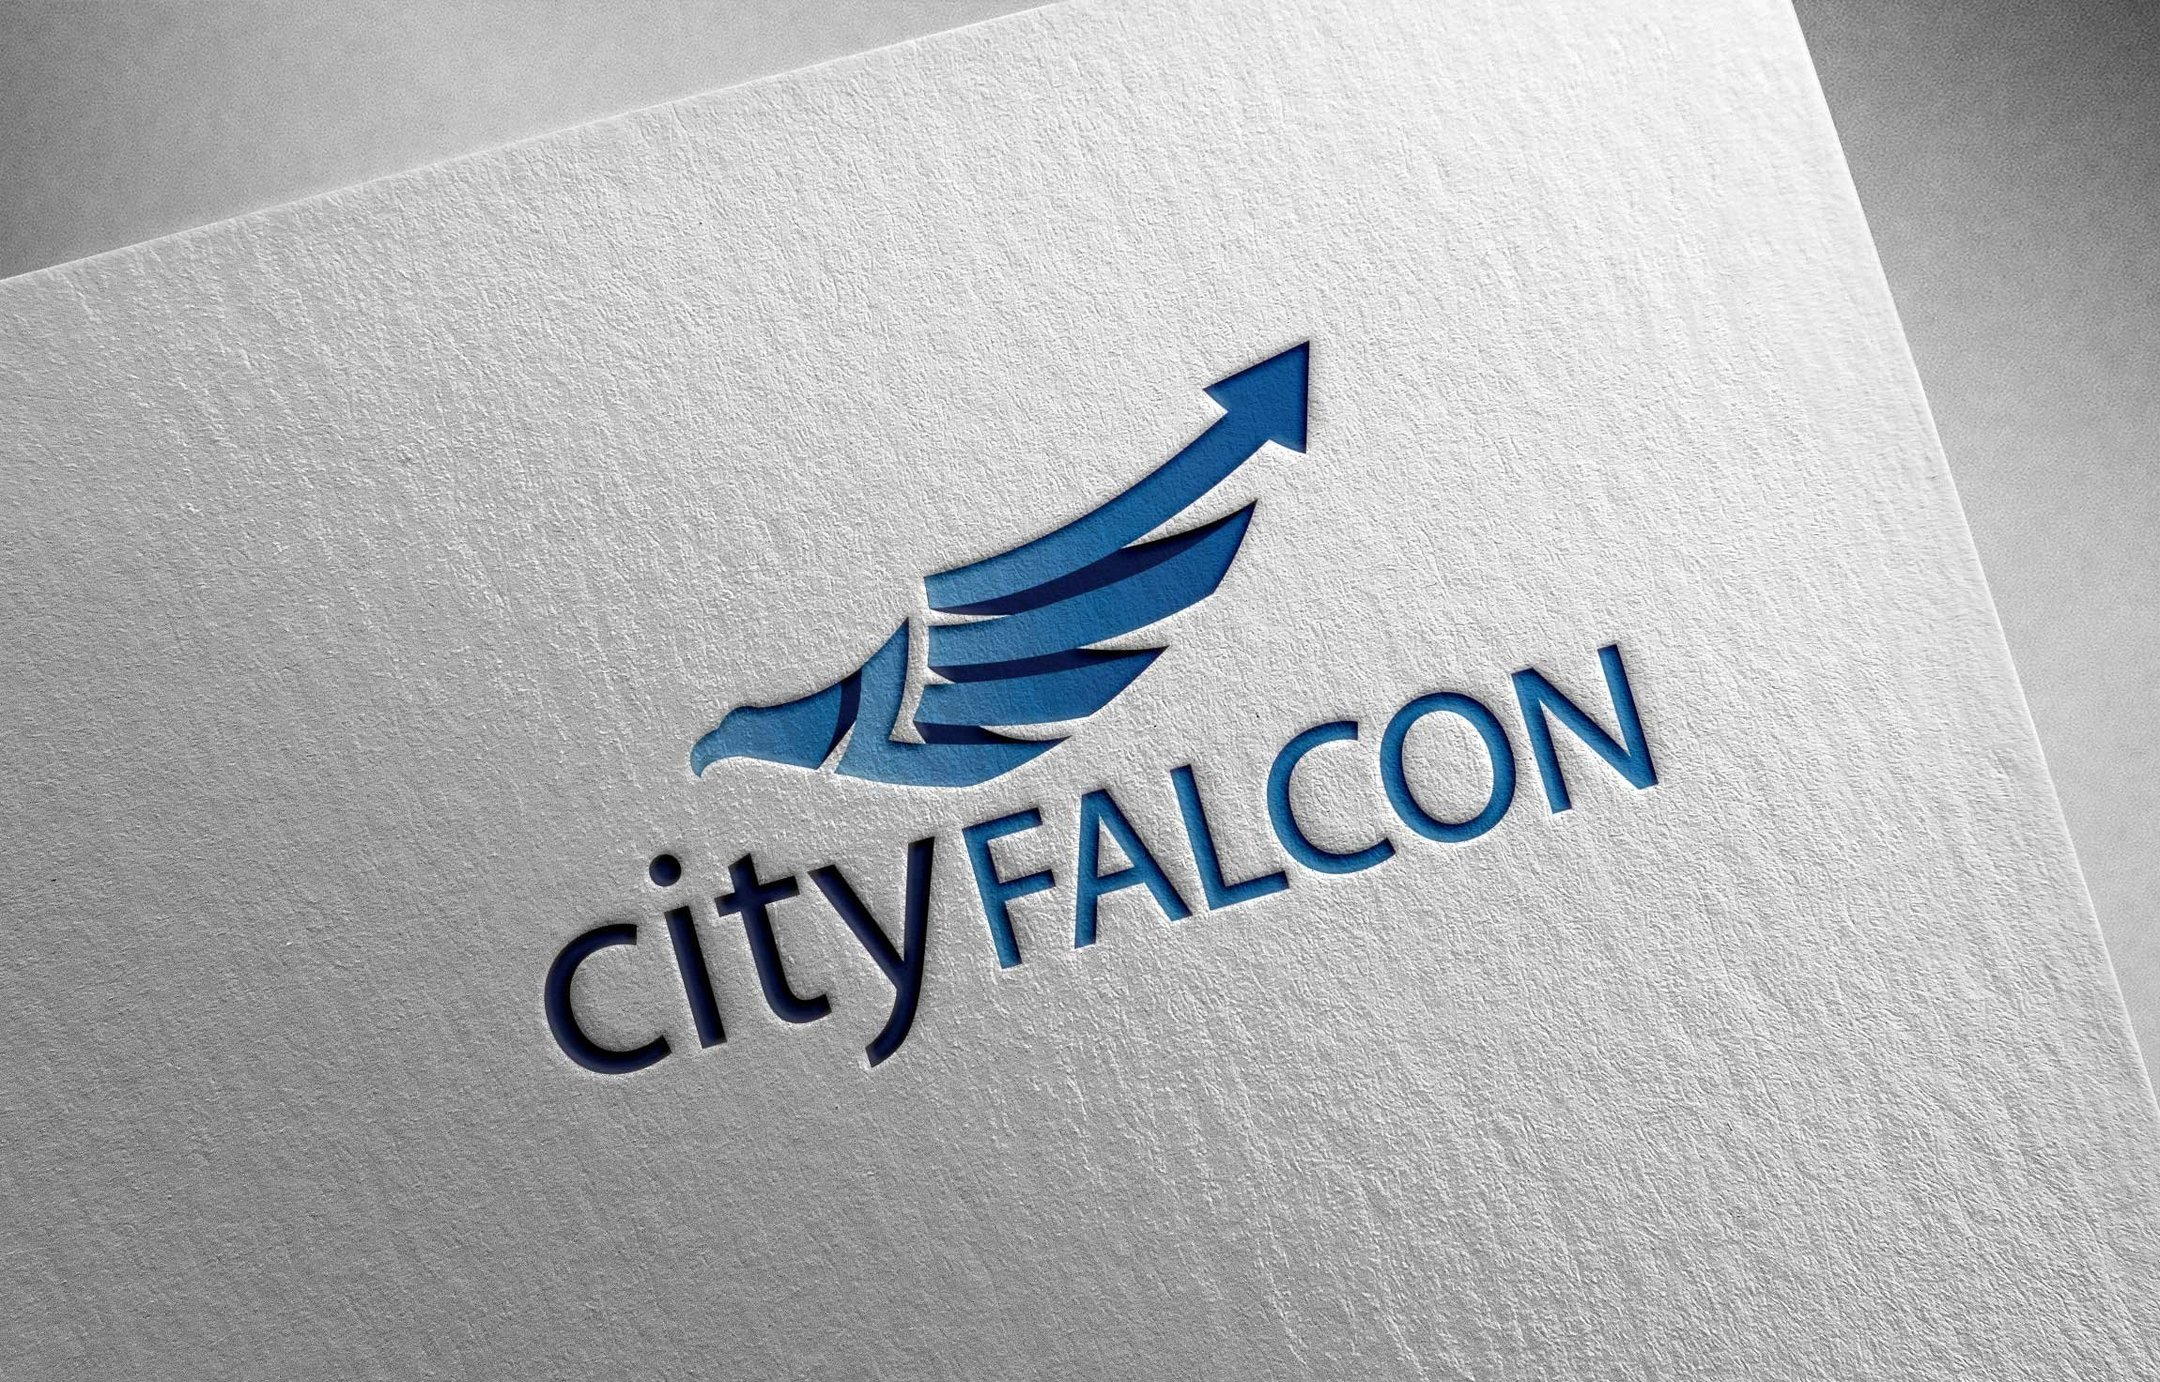 CityFALCON Soars Past Initial Seedrs' Equity Crowdfunding Goal